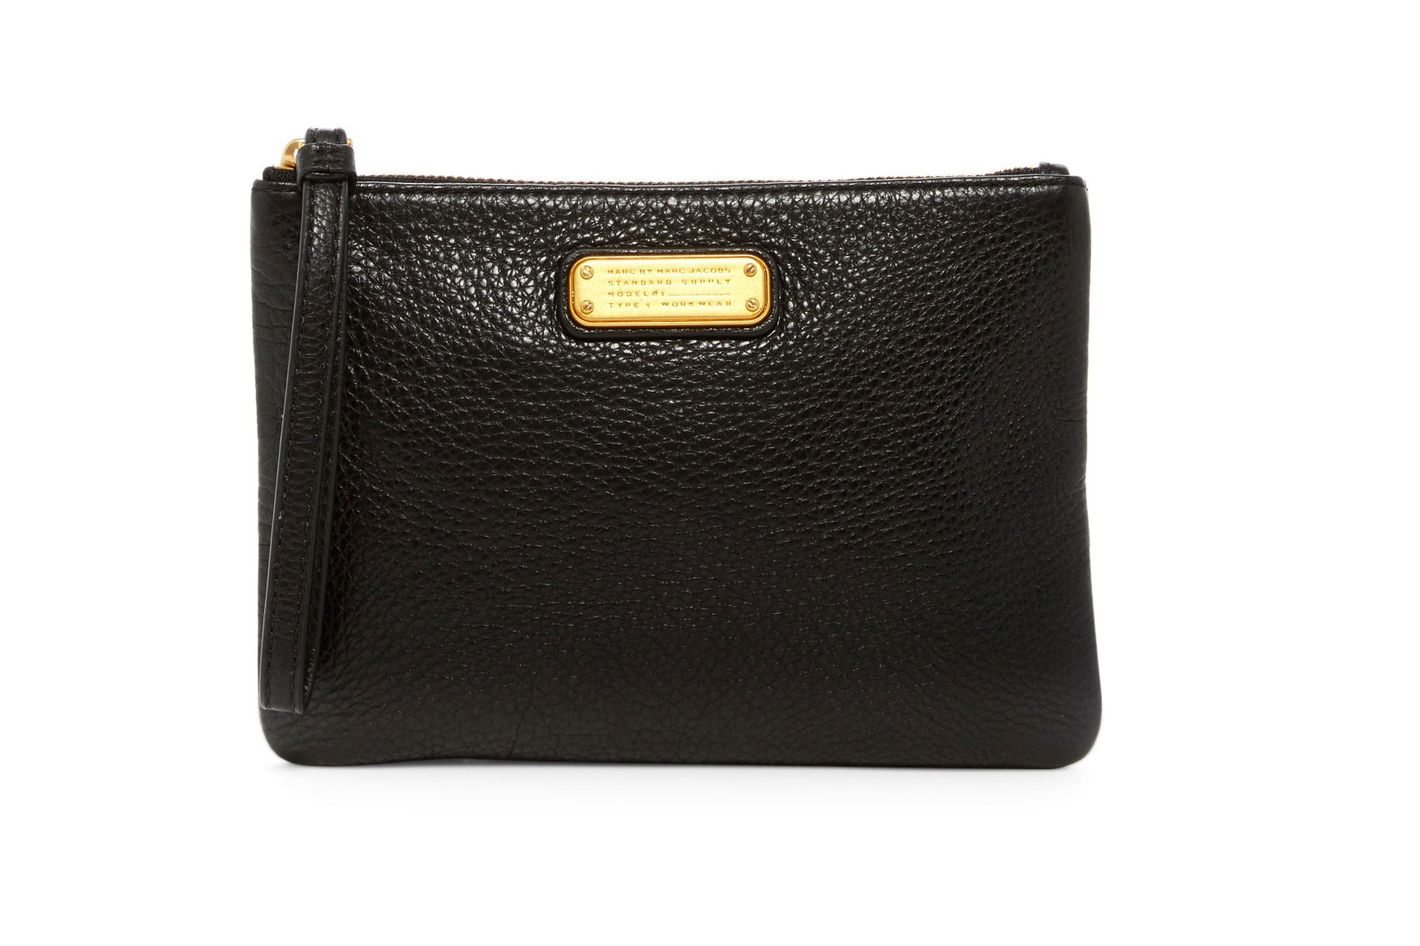 Marc by Marc Jacobs New Q Leather Wristlet Pouch